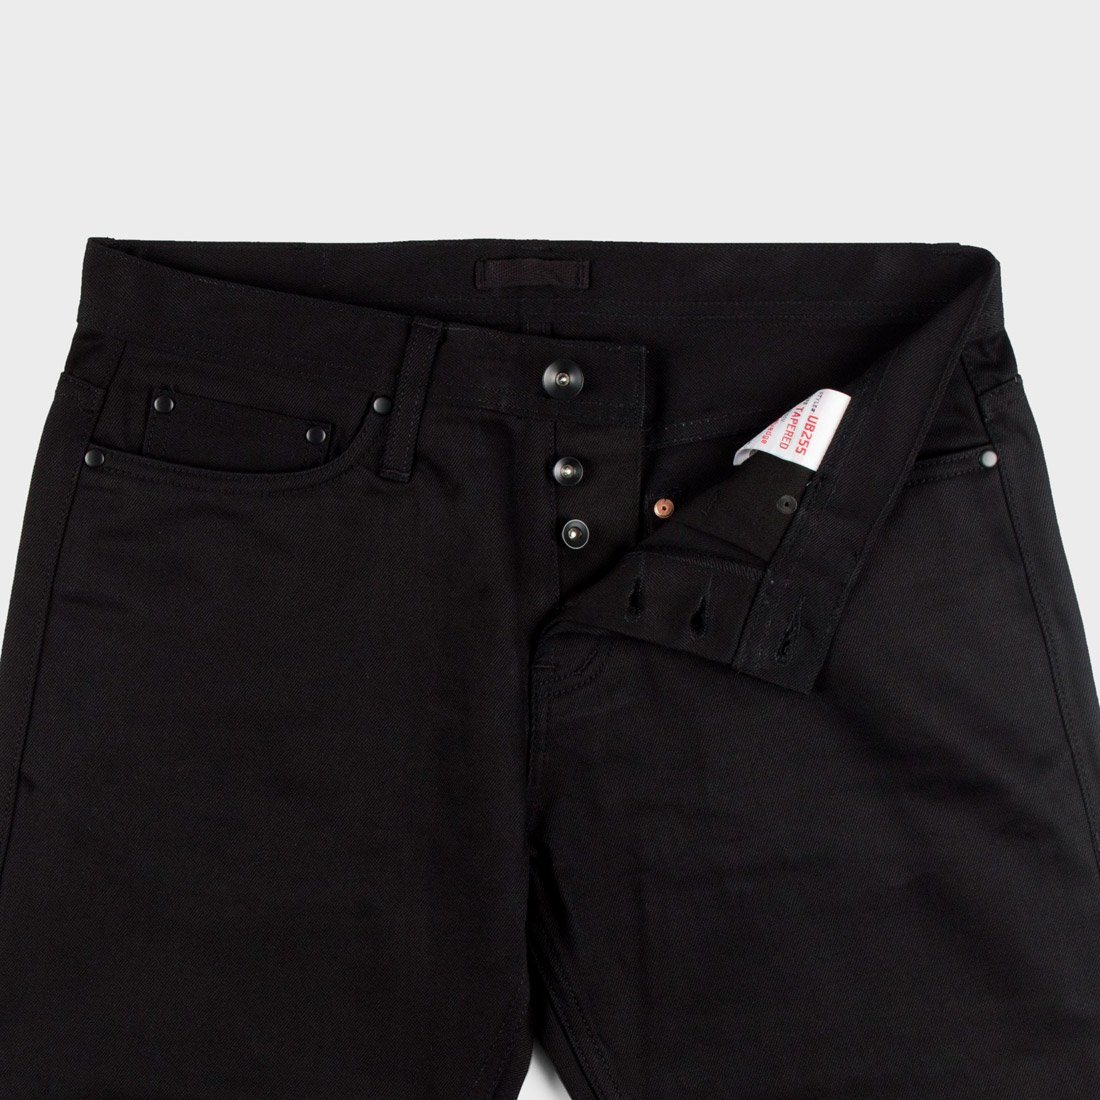 d514cff327 Unbranded Tapered 12.5oz Selvedge Chino Black – Wayward